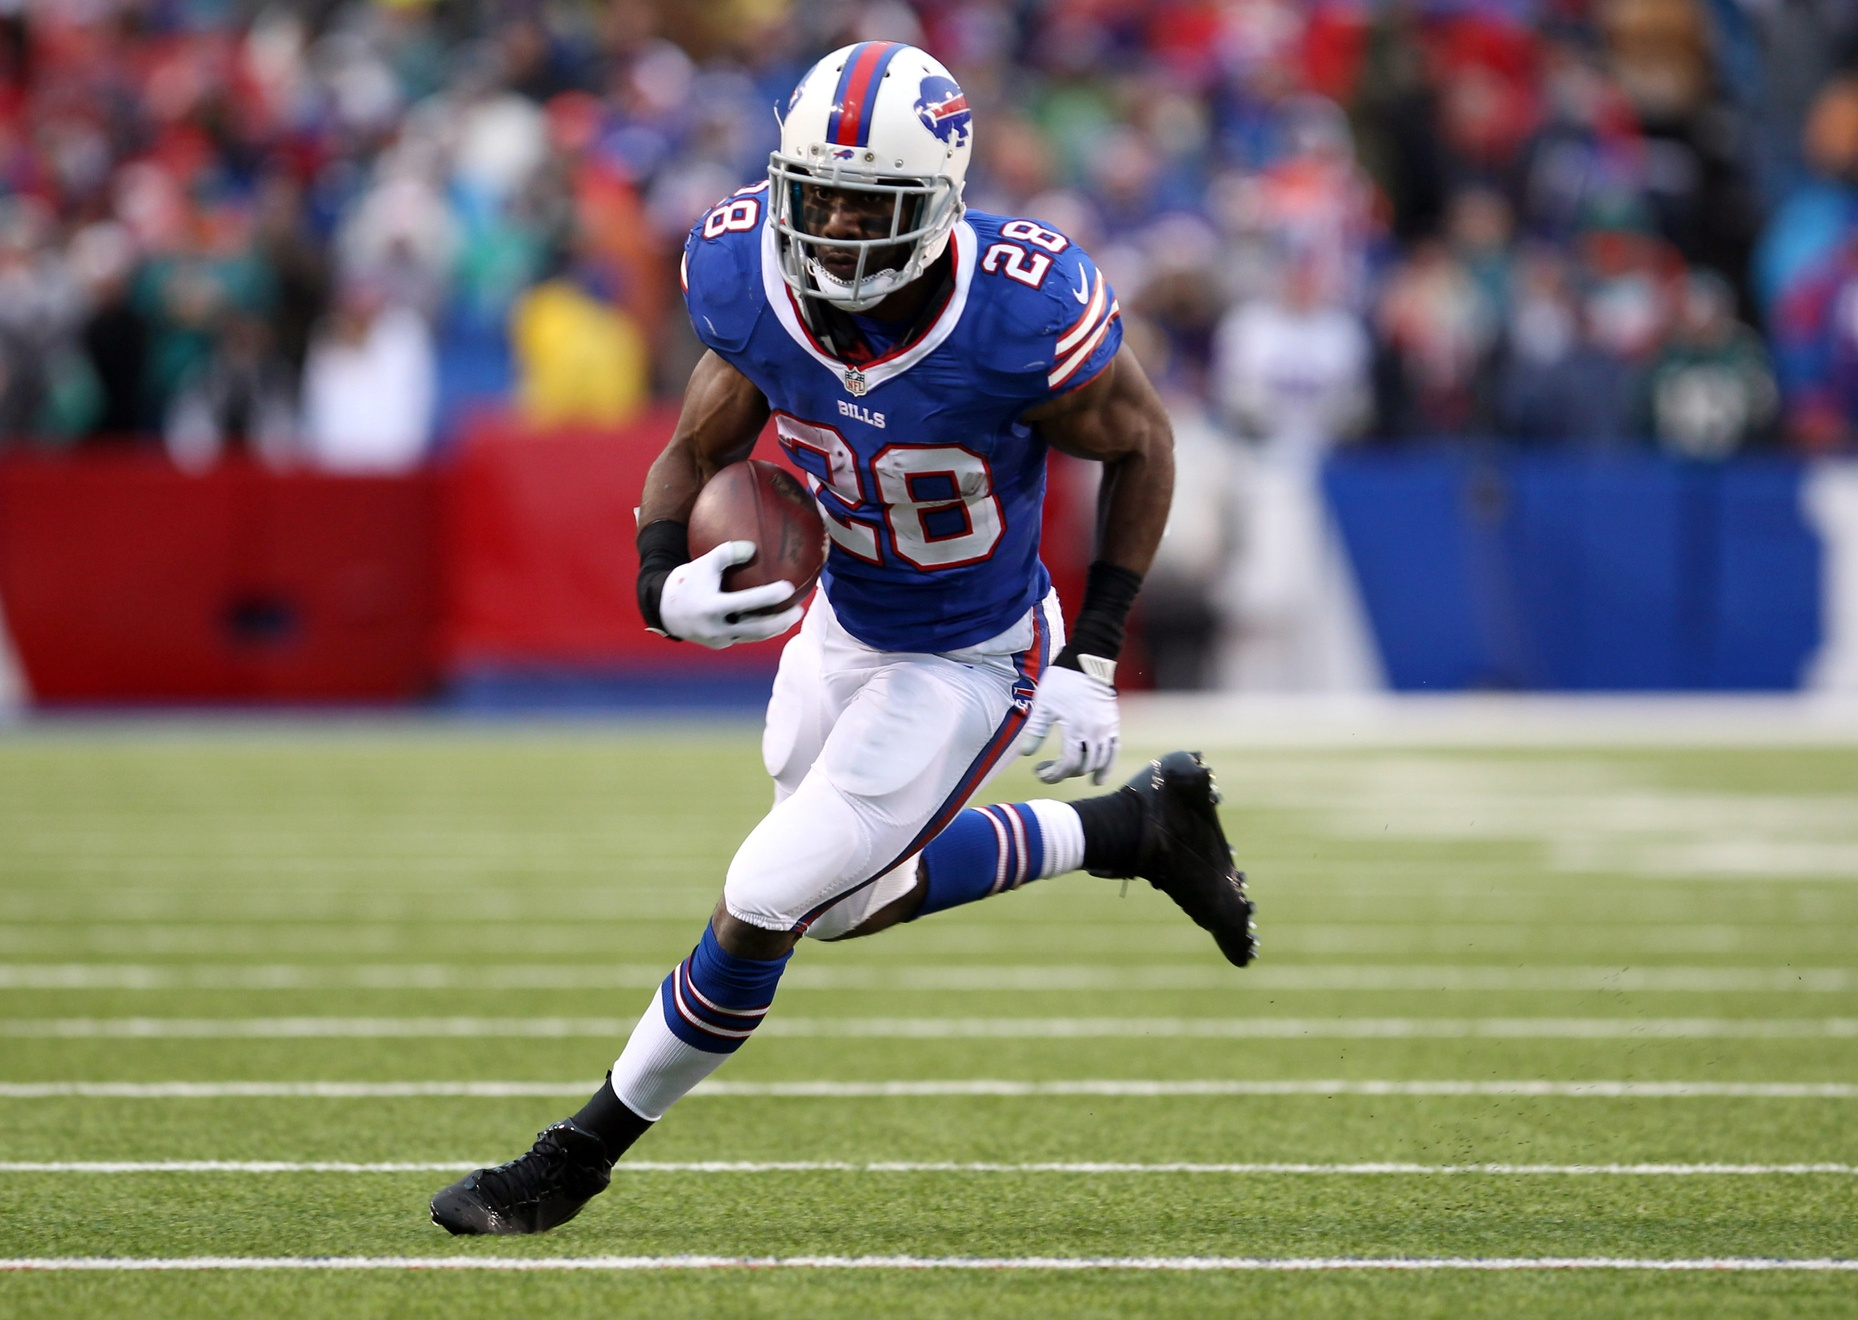 Contract Forecast: CJ Spiller